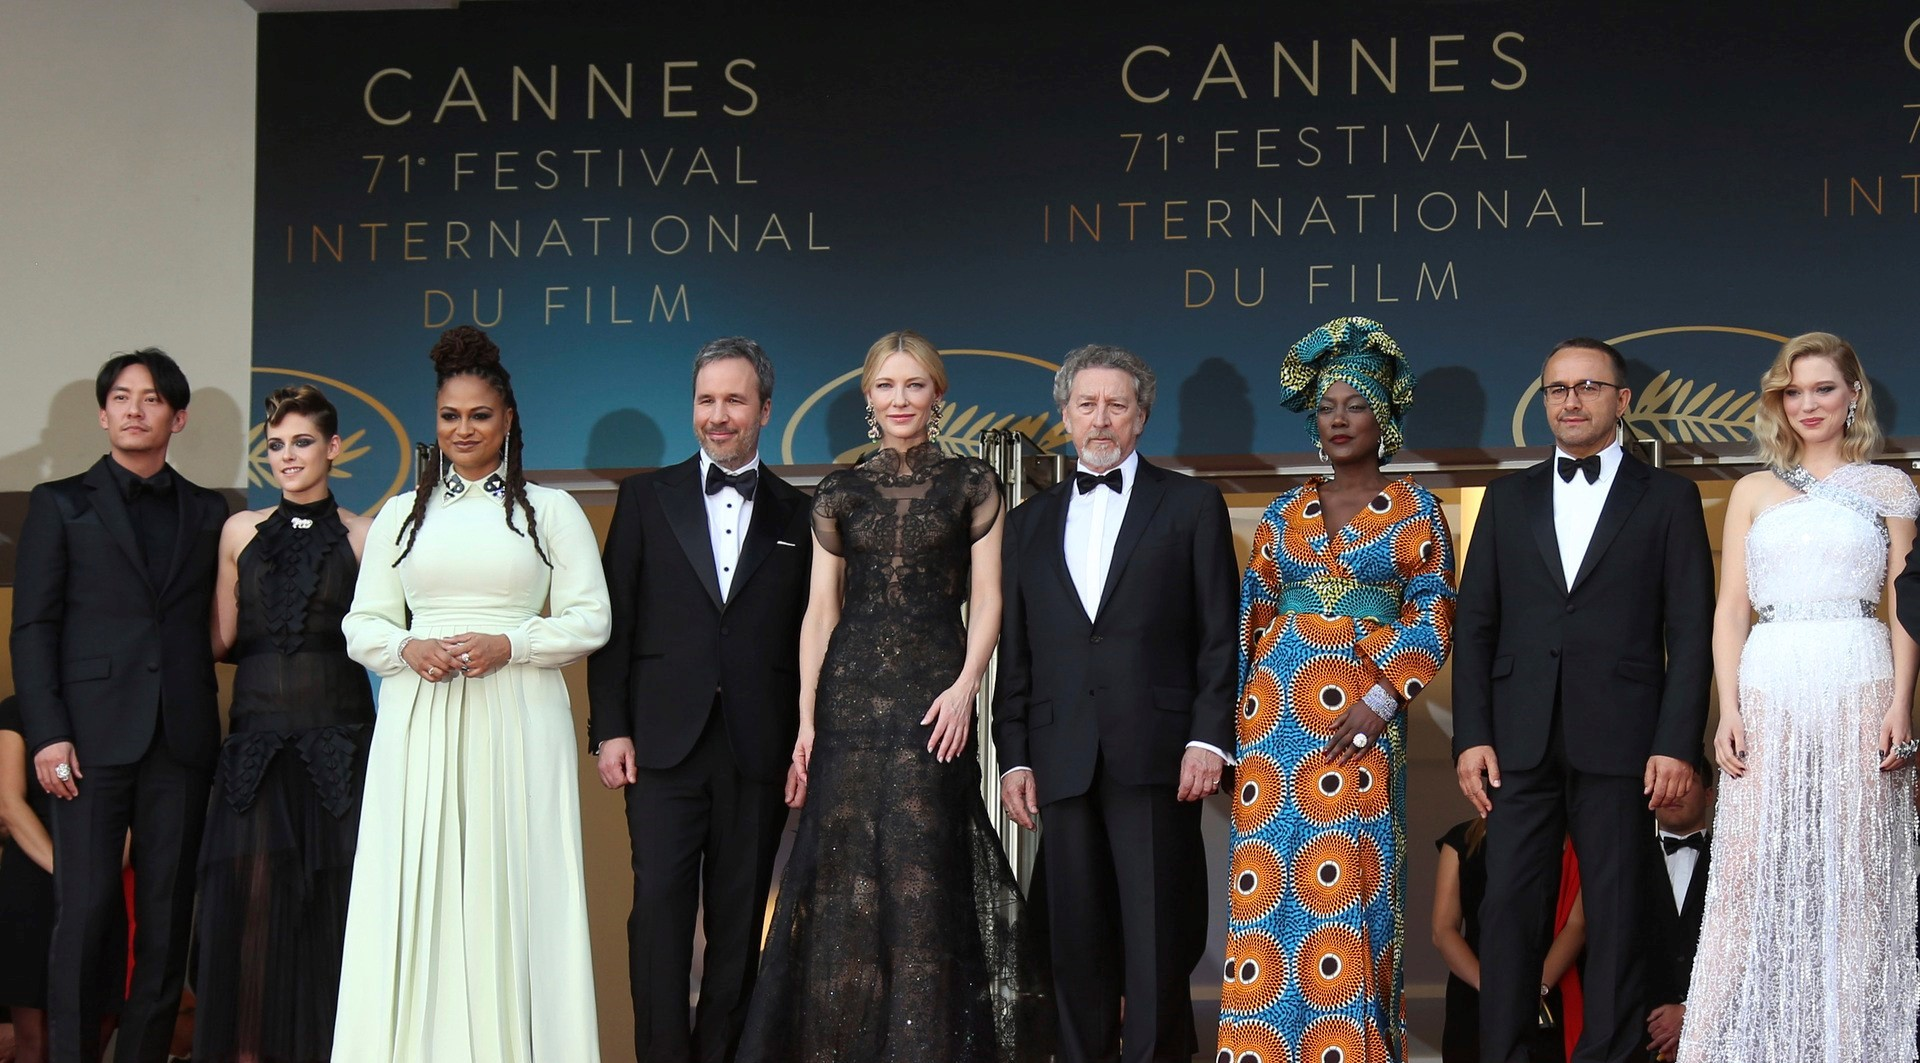 Cannes Film Festival Jury, 2018, first Cannes film festival, history of Cannes, Film or fashion